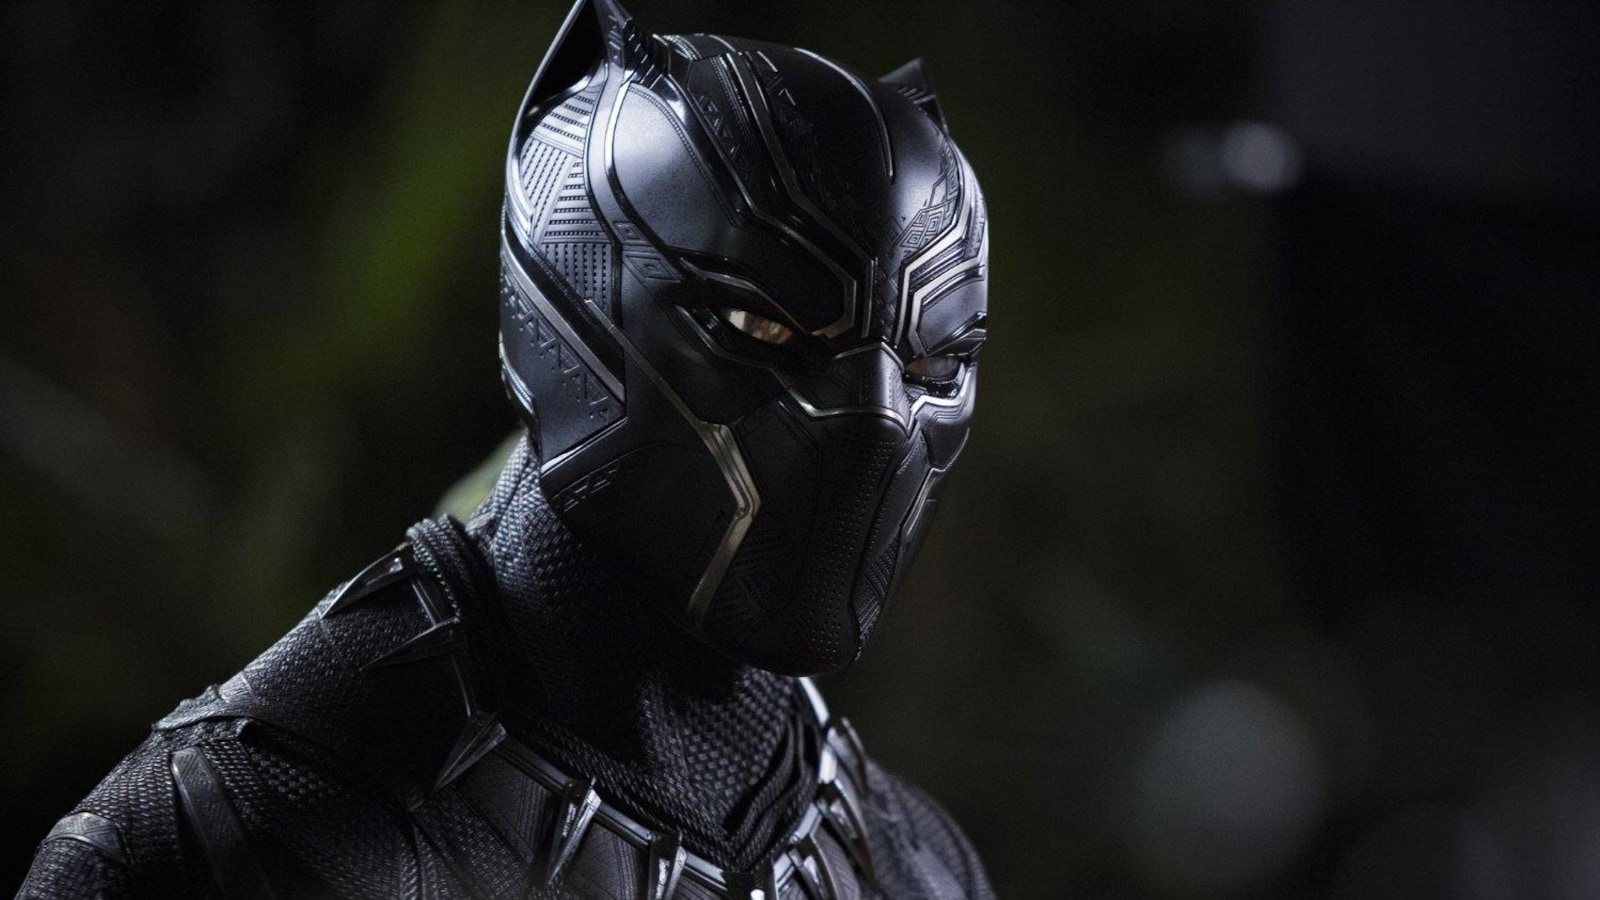 Image promotionnelle du film « Black Panther ».